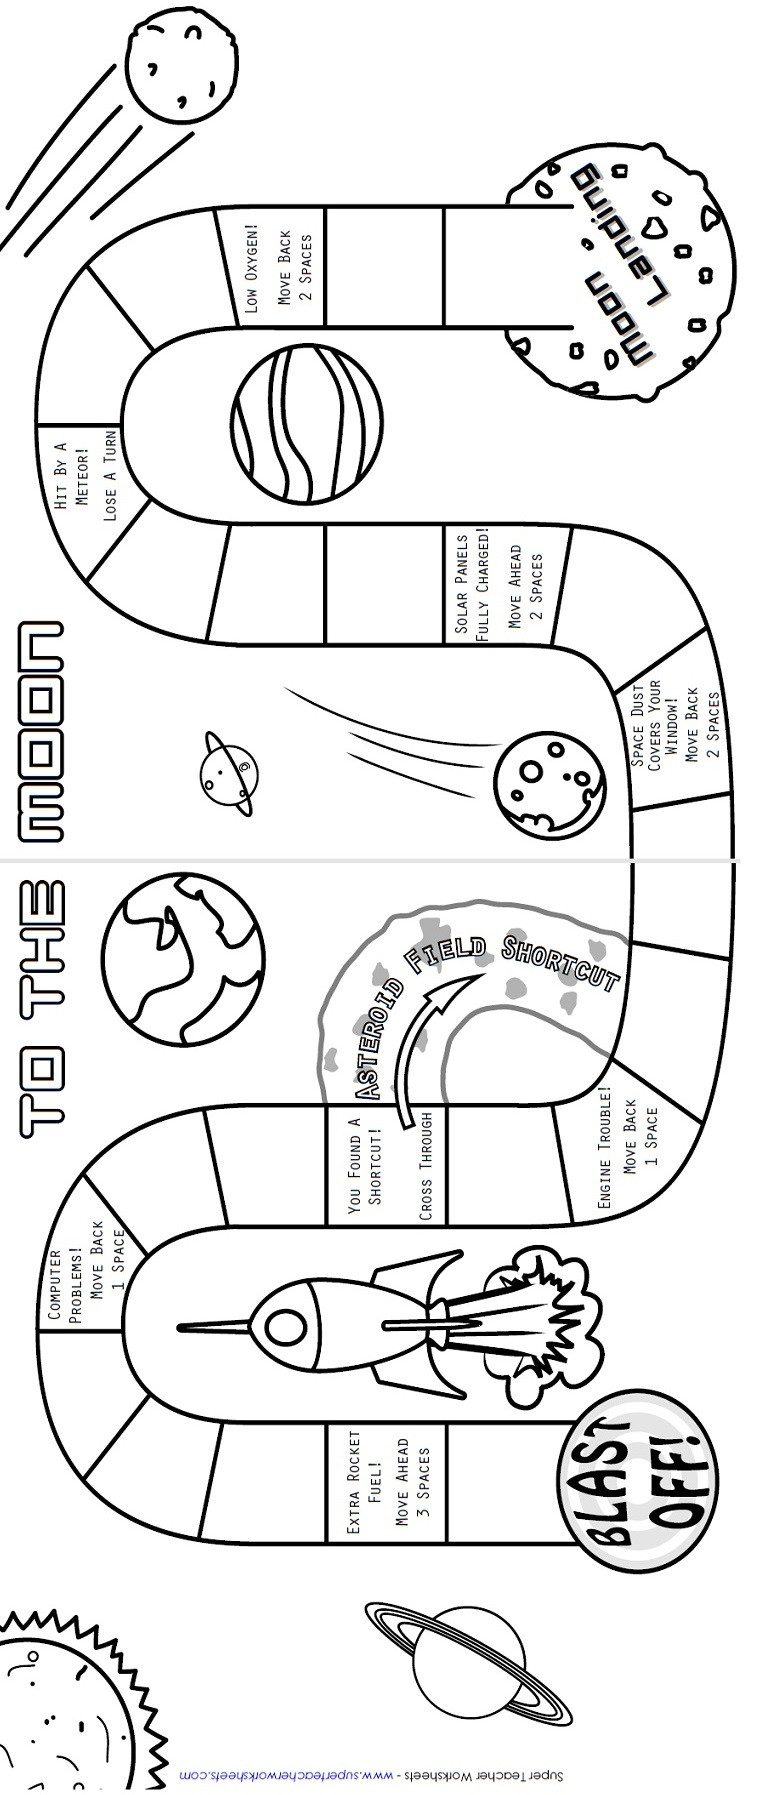 Solar System Worksheets 5th Grade solar System and Planets Worksheets